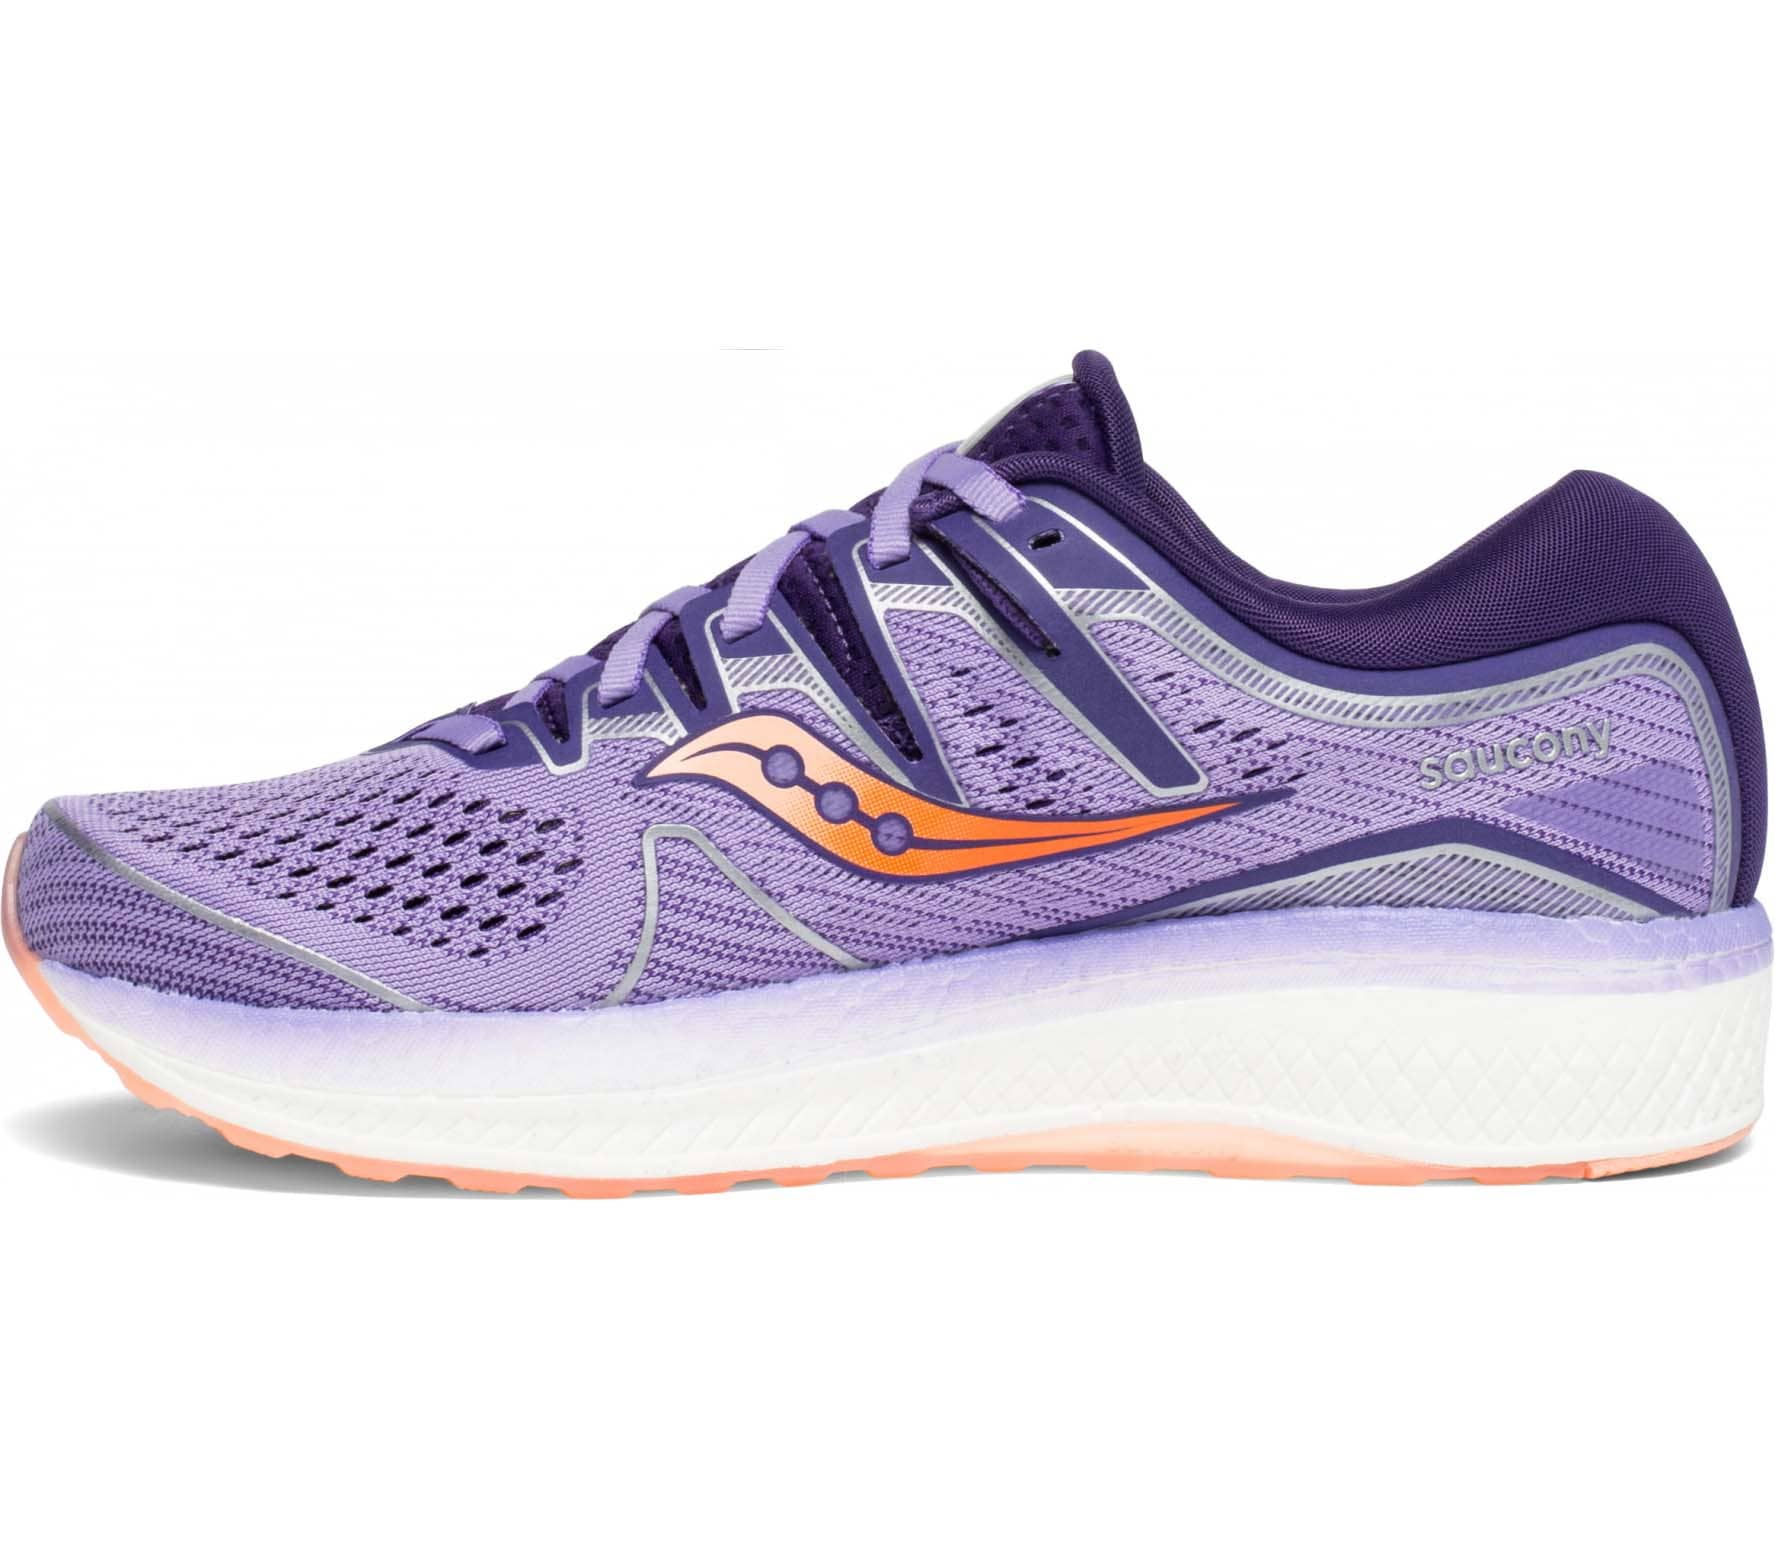 Saucony Triumph Iso 5 Women Running Shoes  purple